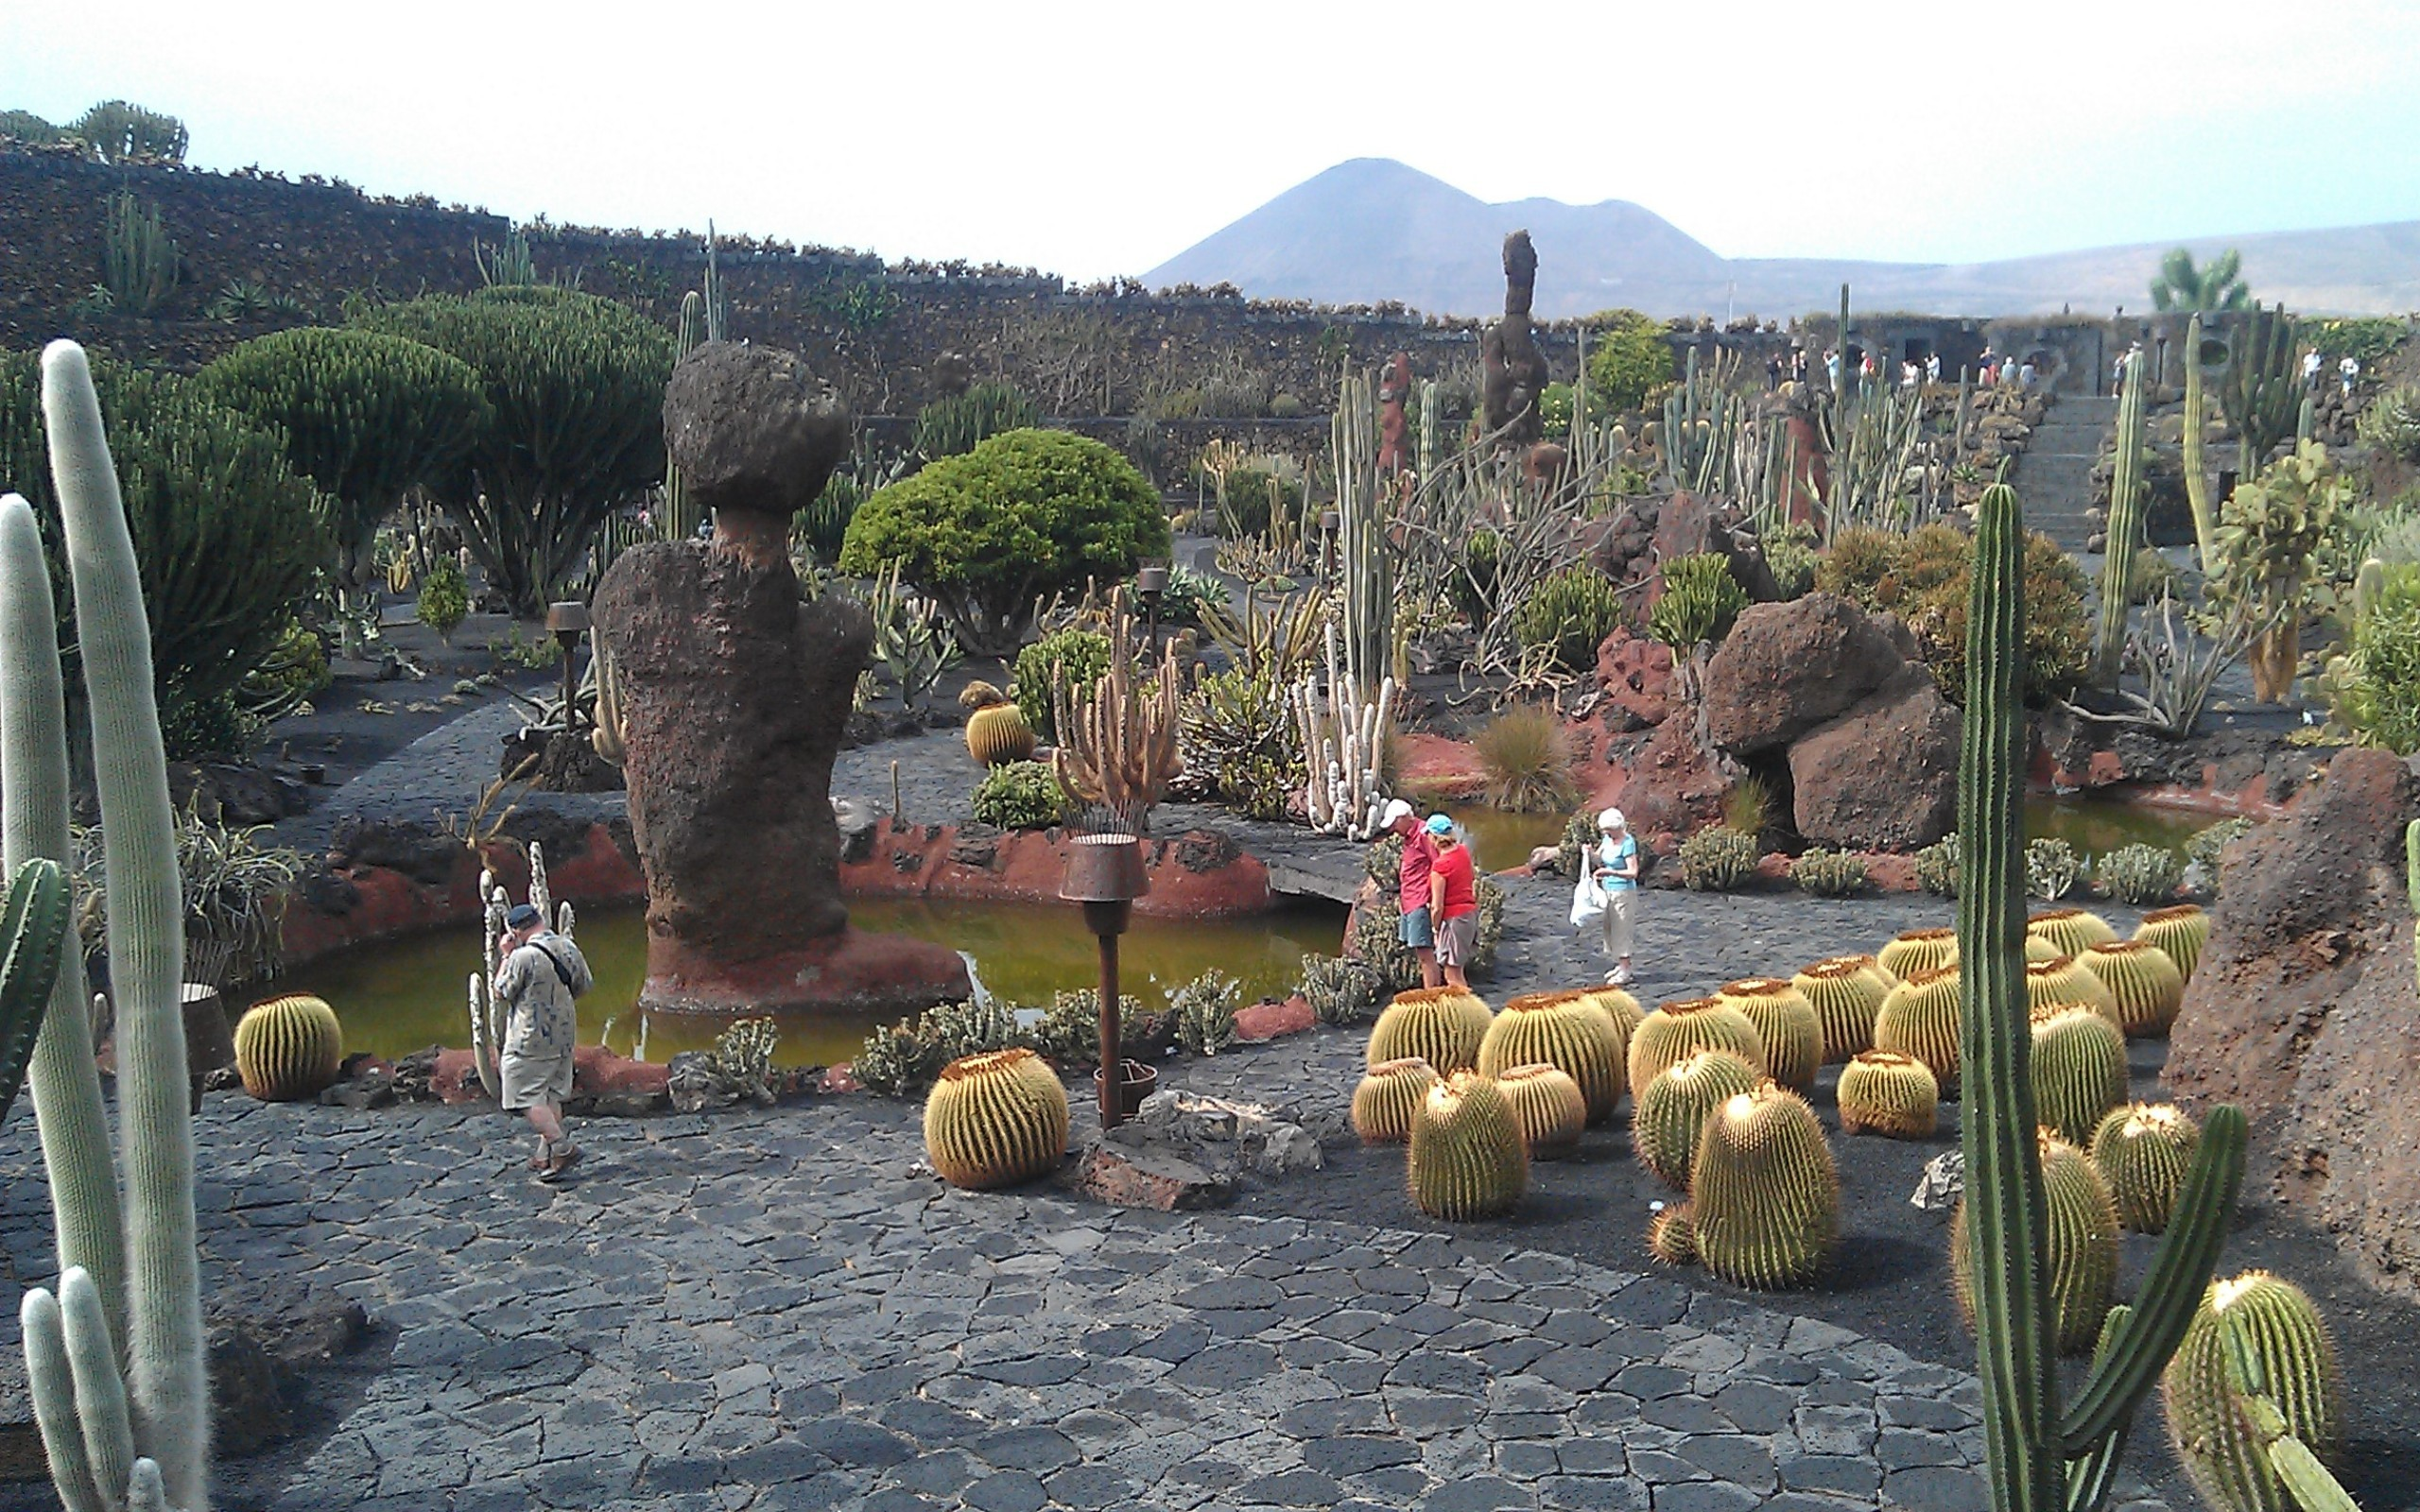 jardin de cactus lanzarote wallpapers and stock photos